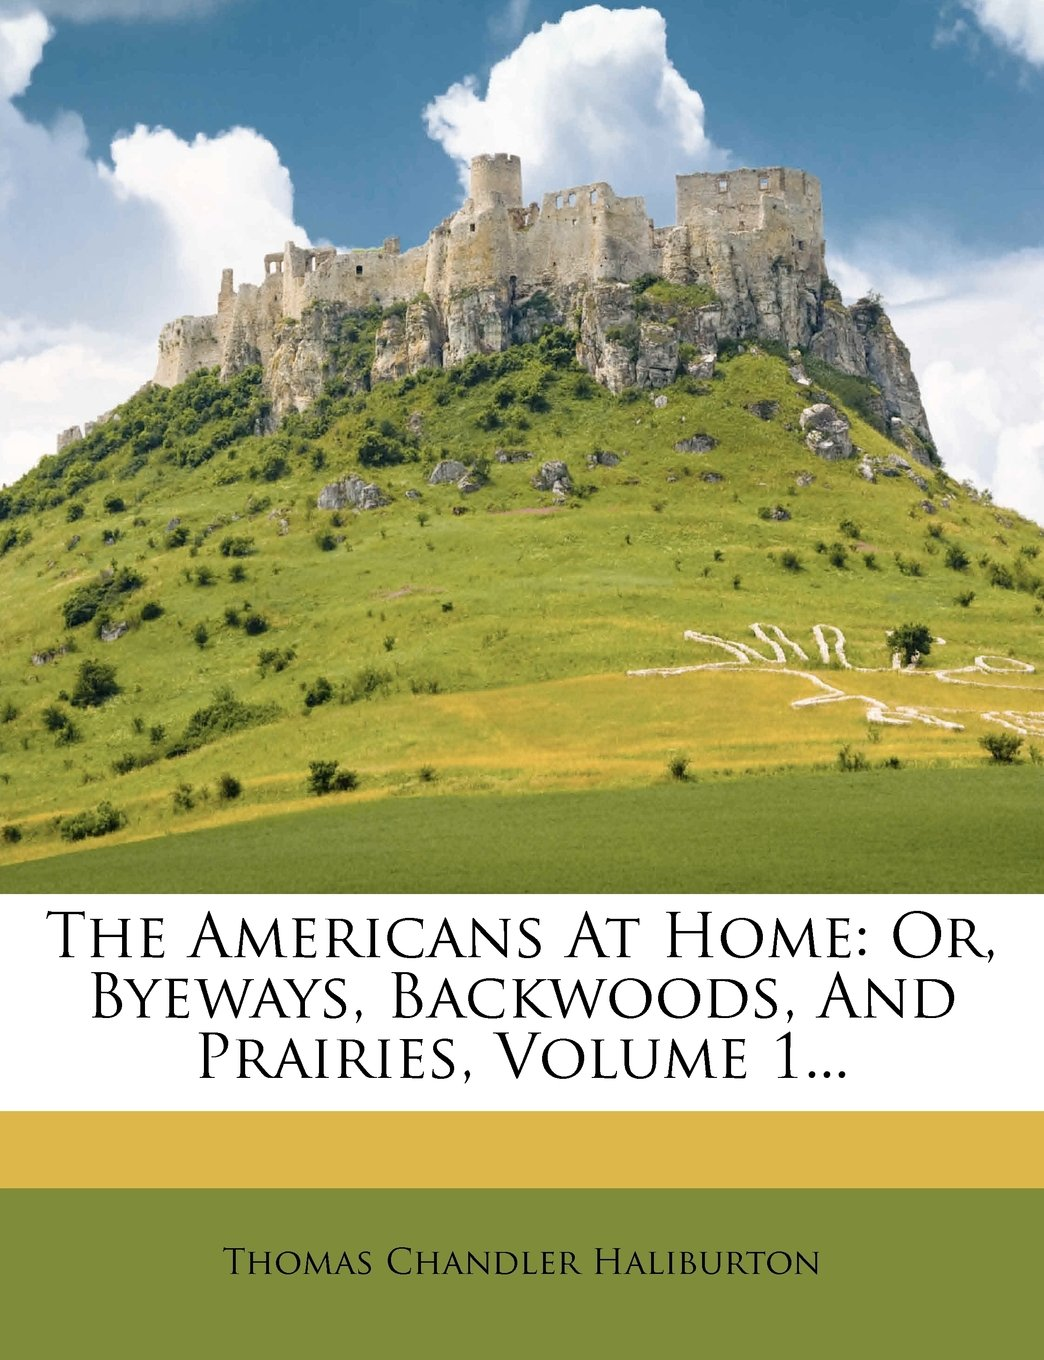 Read Online The Americans At Home: Or, Byeways, Backwoods, And Prairies, Volume 1... PDF